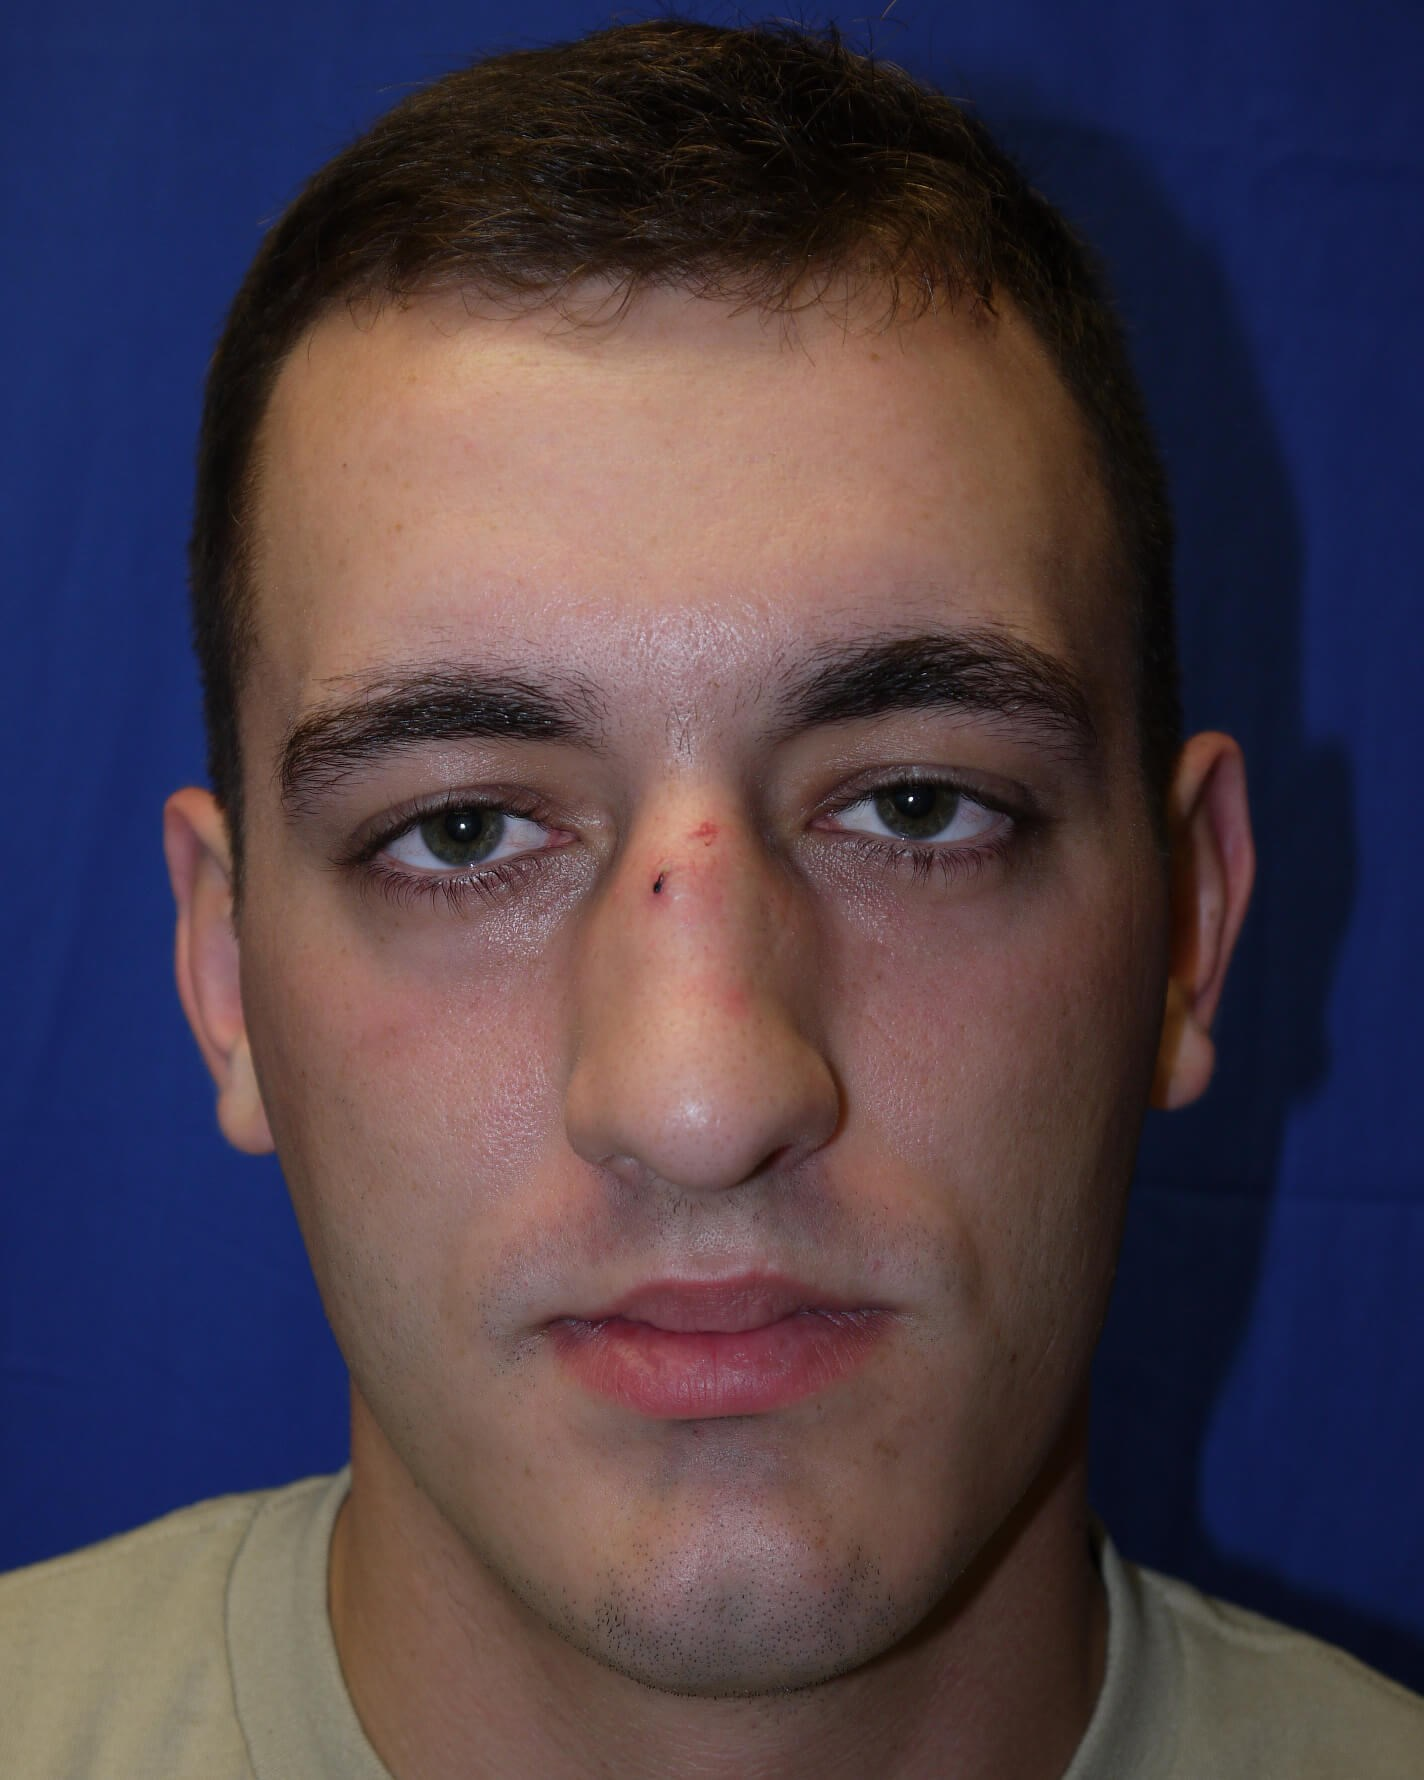 Before rhinoplasty - Front view